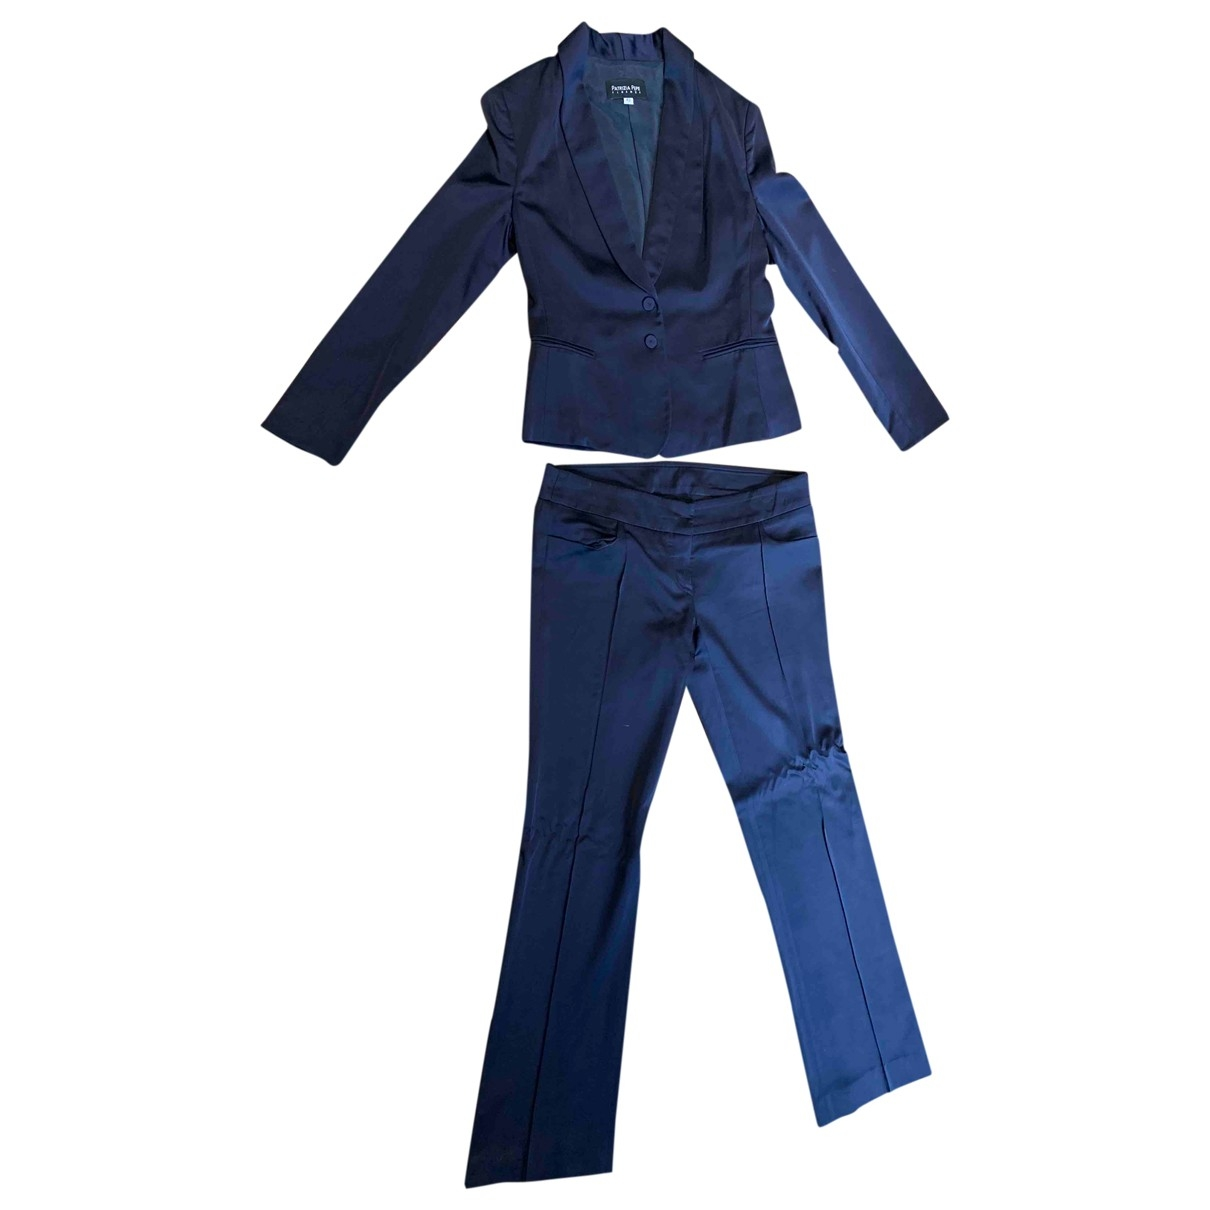 Patrizia Pepe \N Blue jacket for Women 42 IT